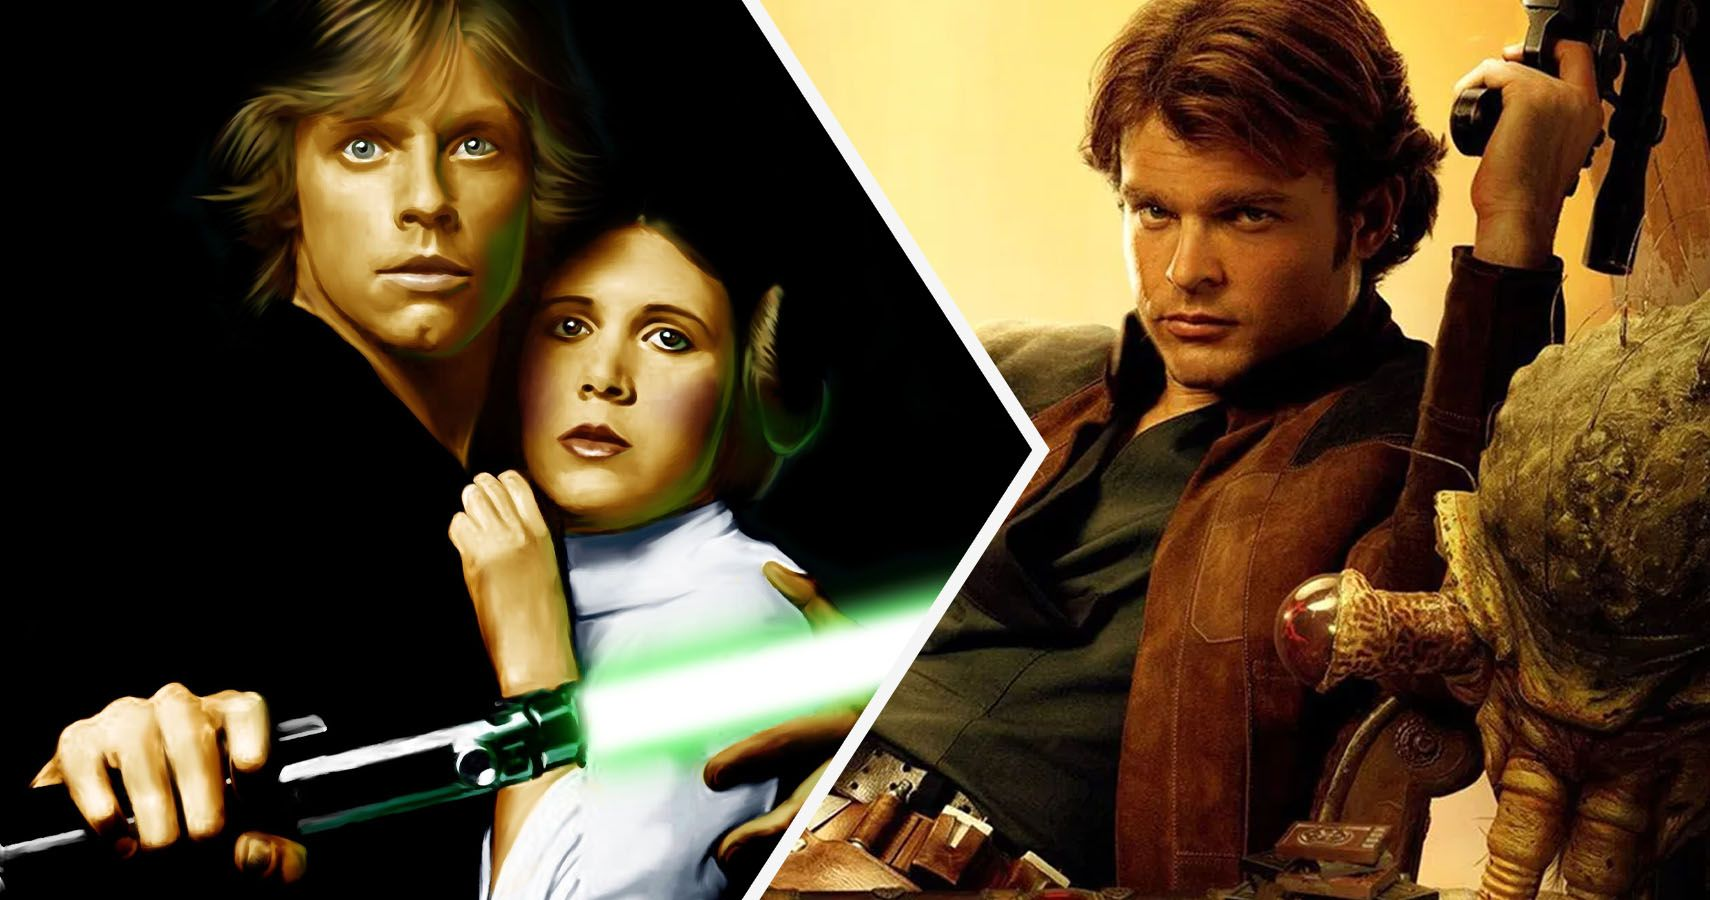 15 Precise Moments Where The Original Star Wars Trilogy Was Ruined